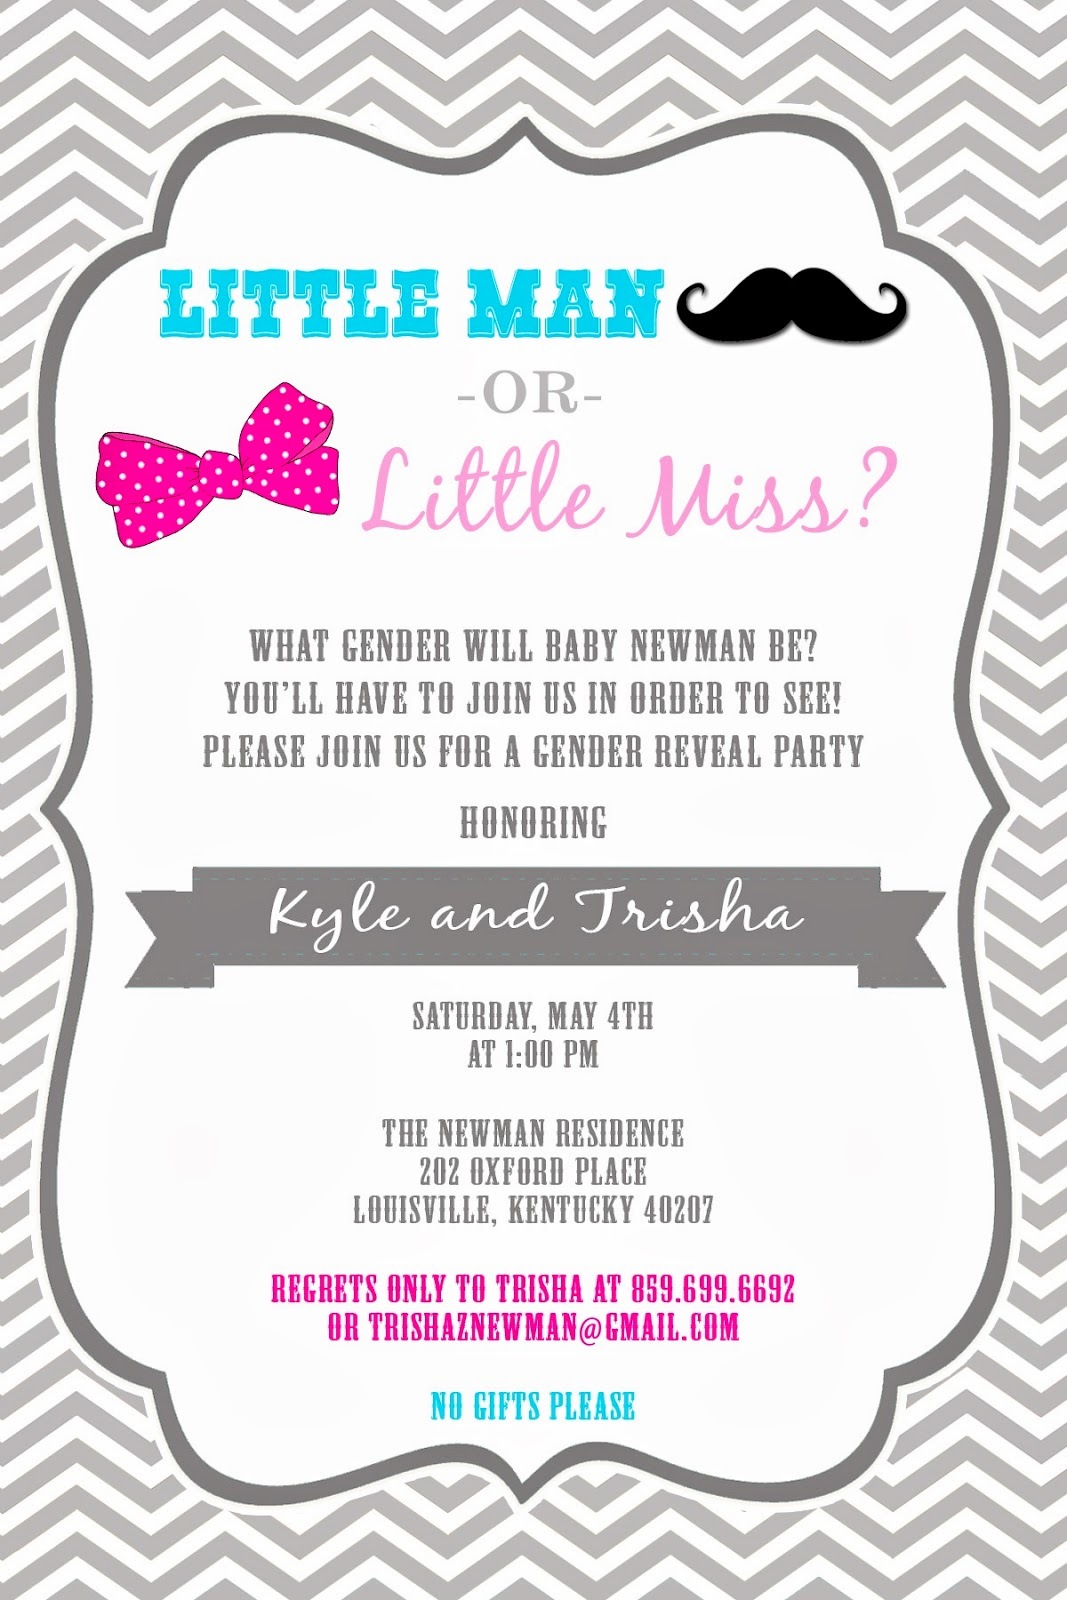 free printable gender reveal party invitations mickey mouse party invitations - Free Printable Gender Reveal Party Invitations